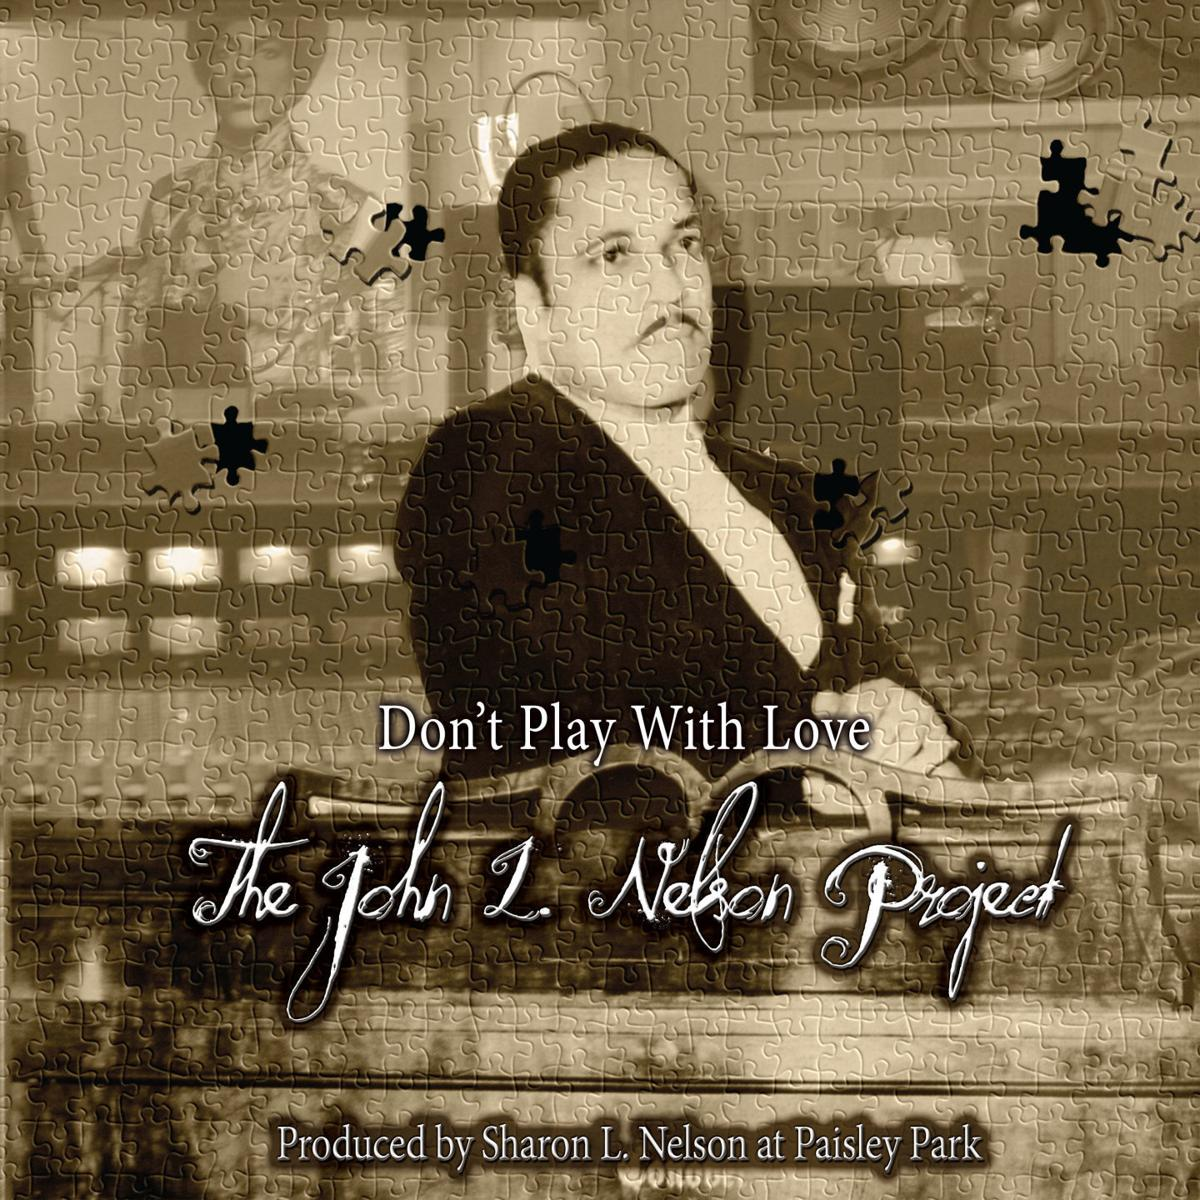 Music Review: The John L. Nelson Project